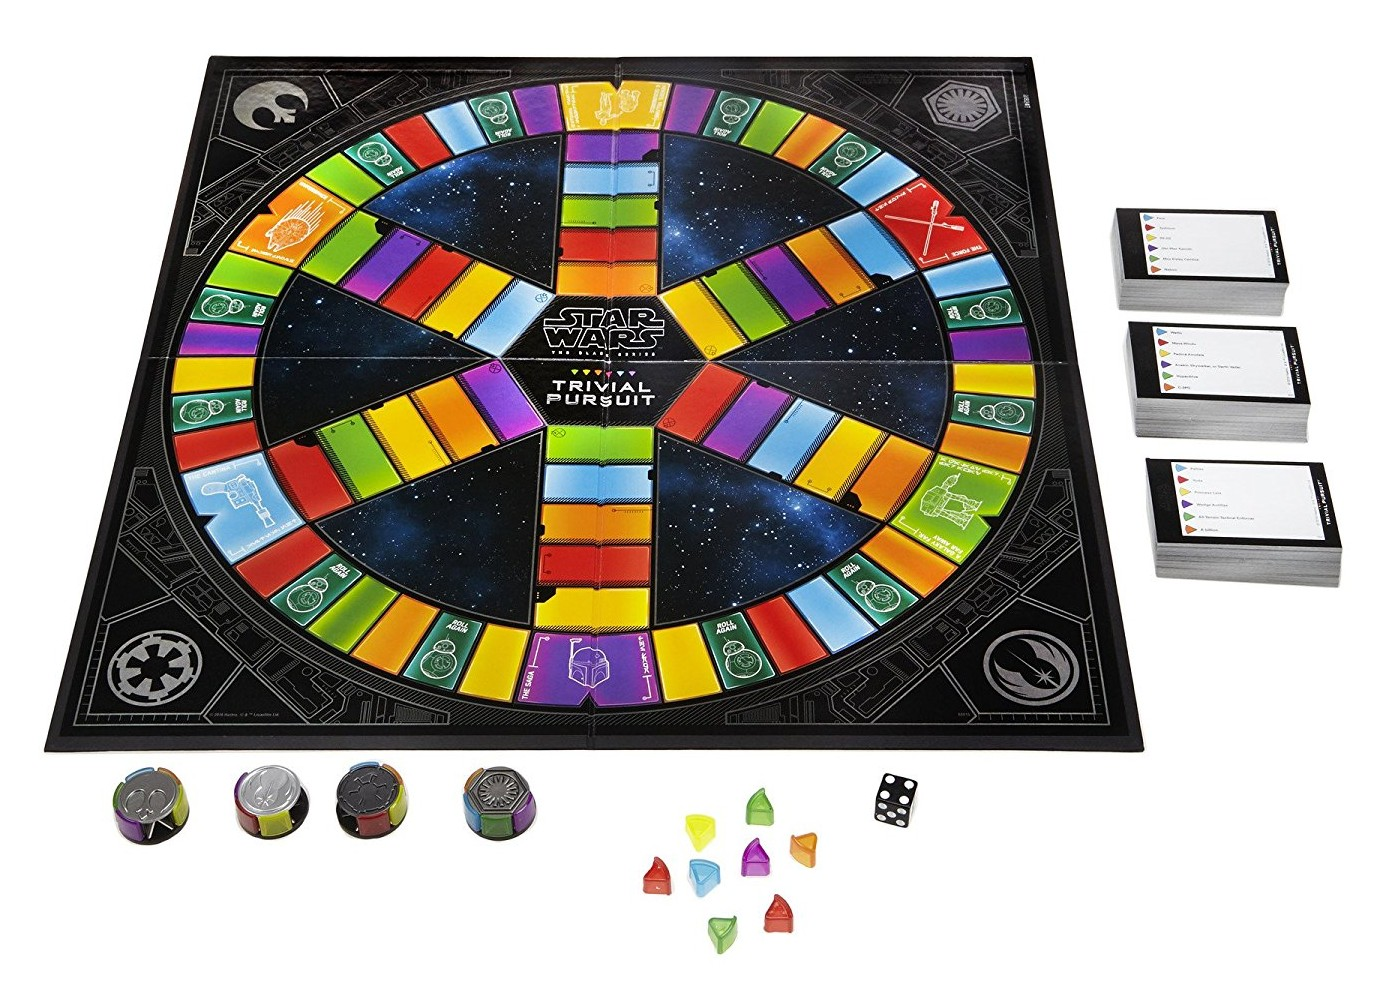 star wars trivial pursuit instructions